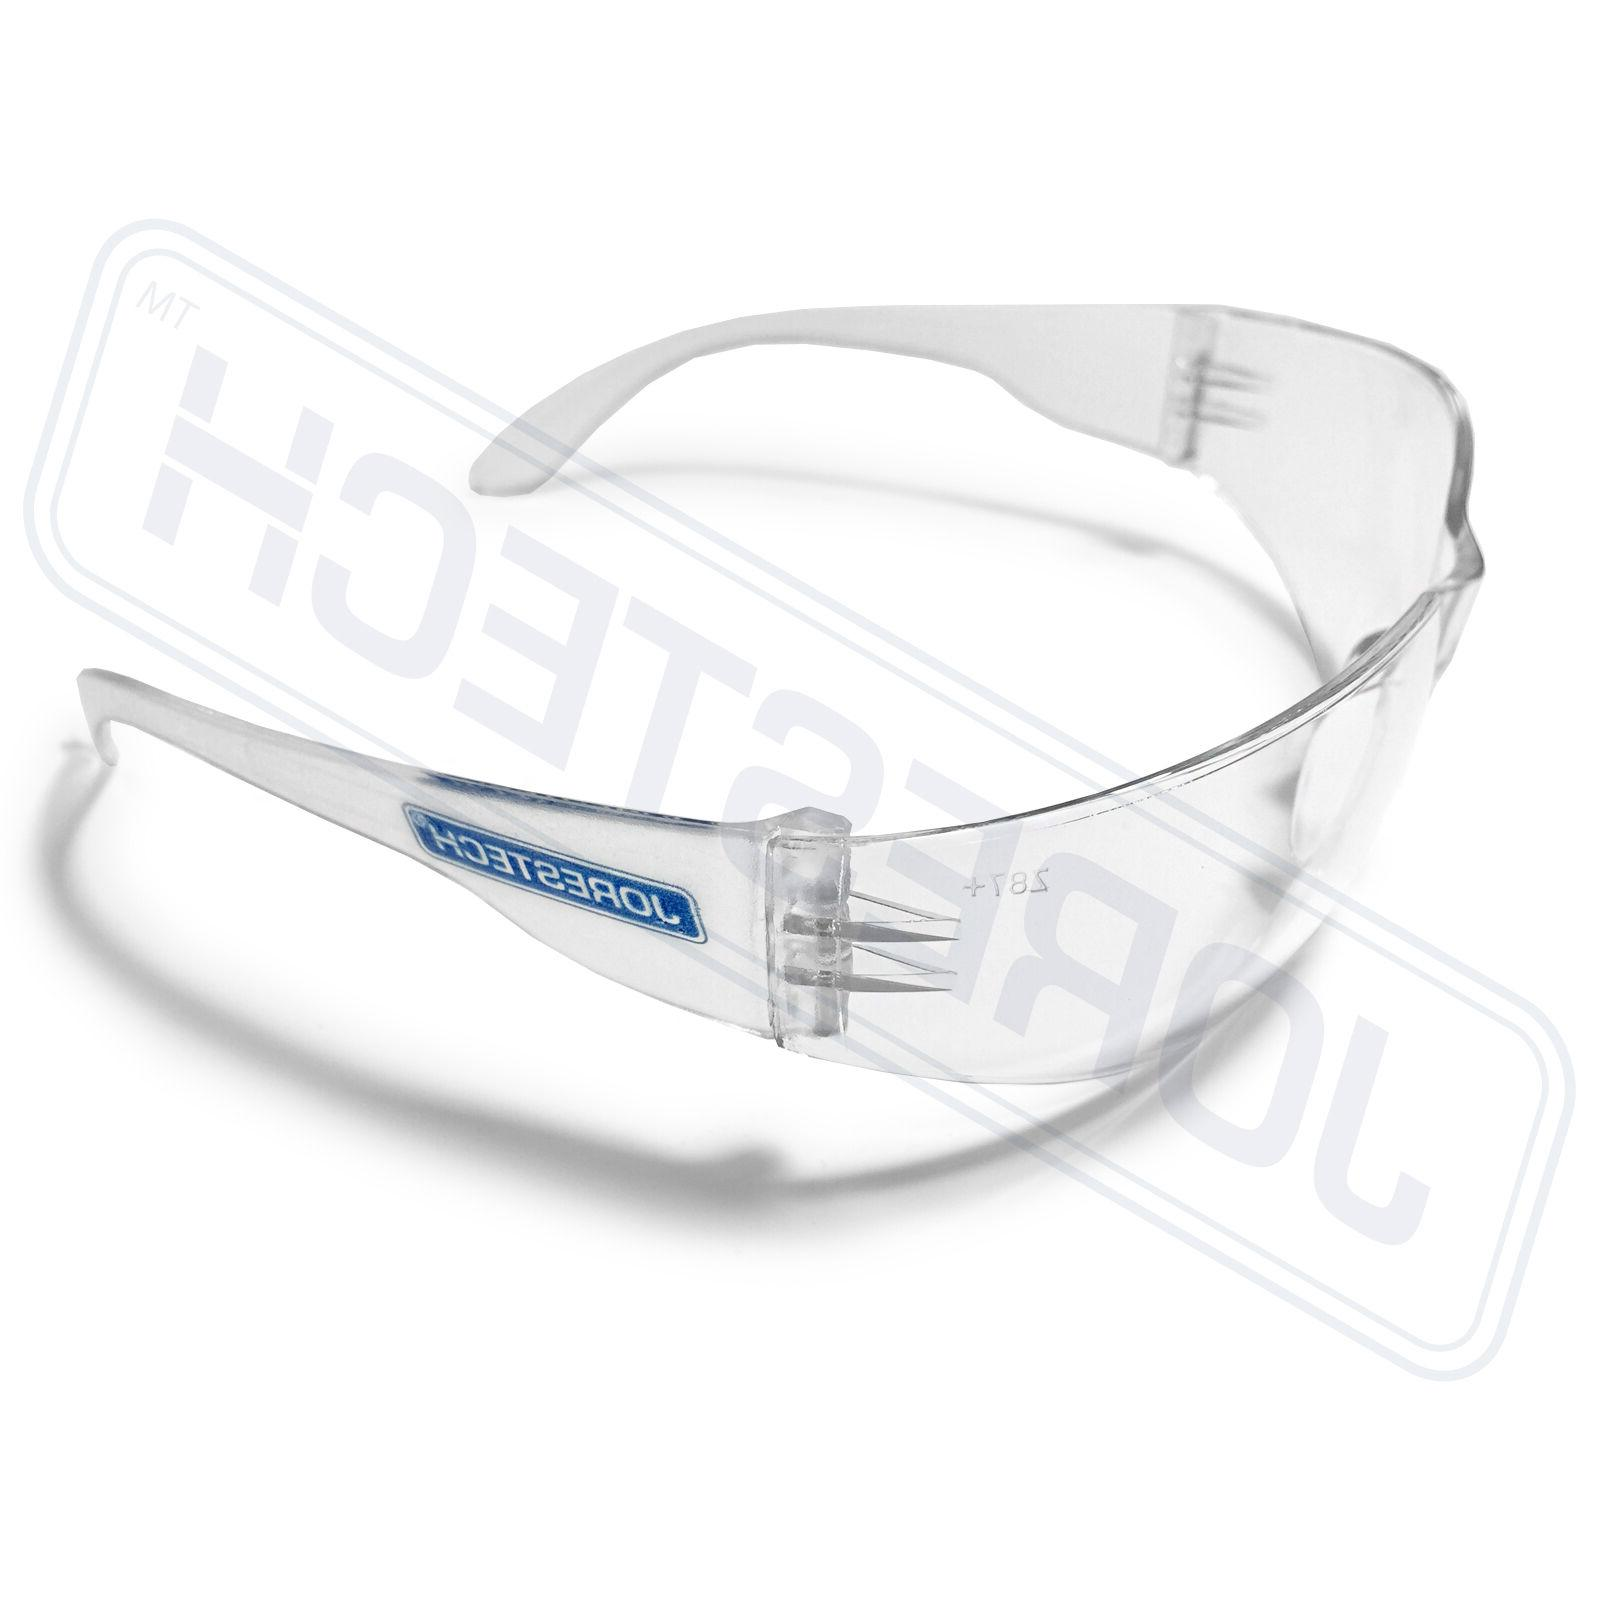 12 UV LENS GLASSES BULK NEW